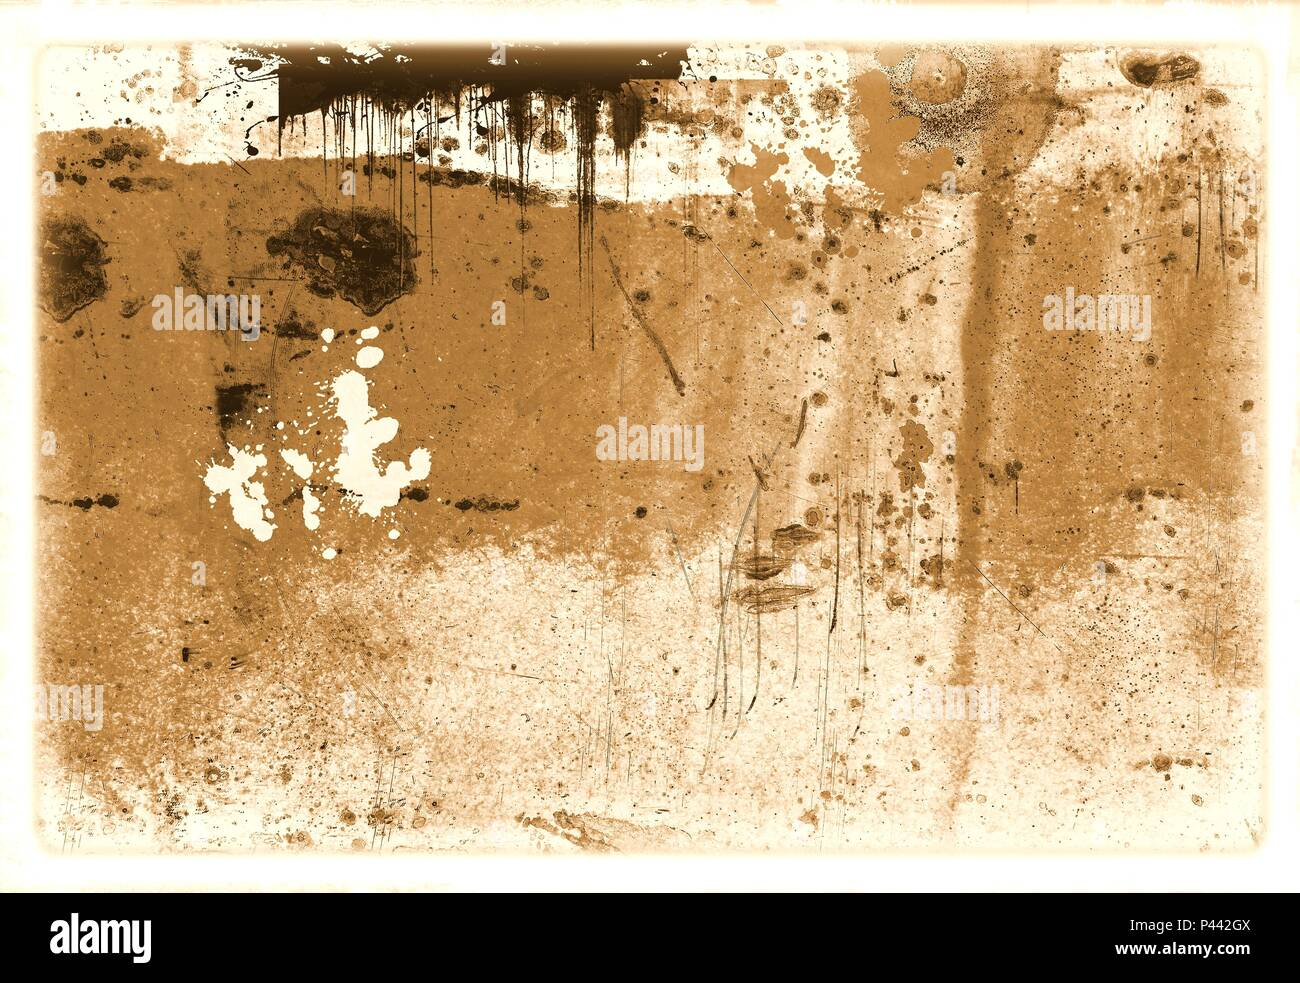 Vintage damaged glass surface in sepia tones. - Stock Image